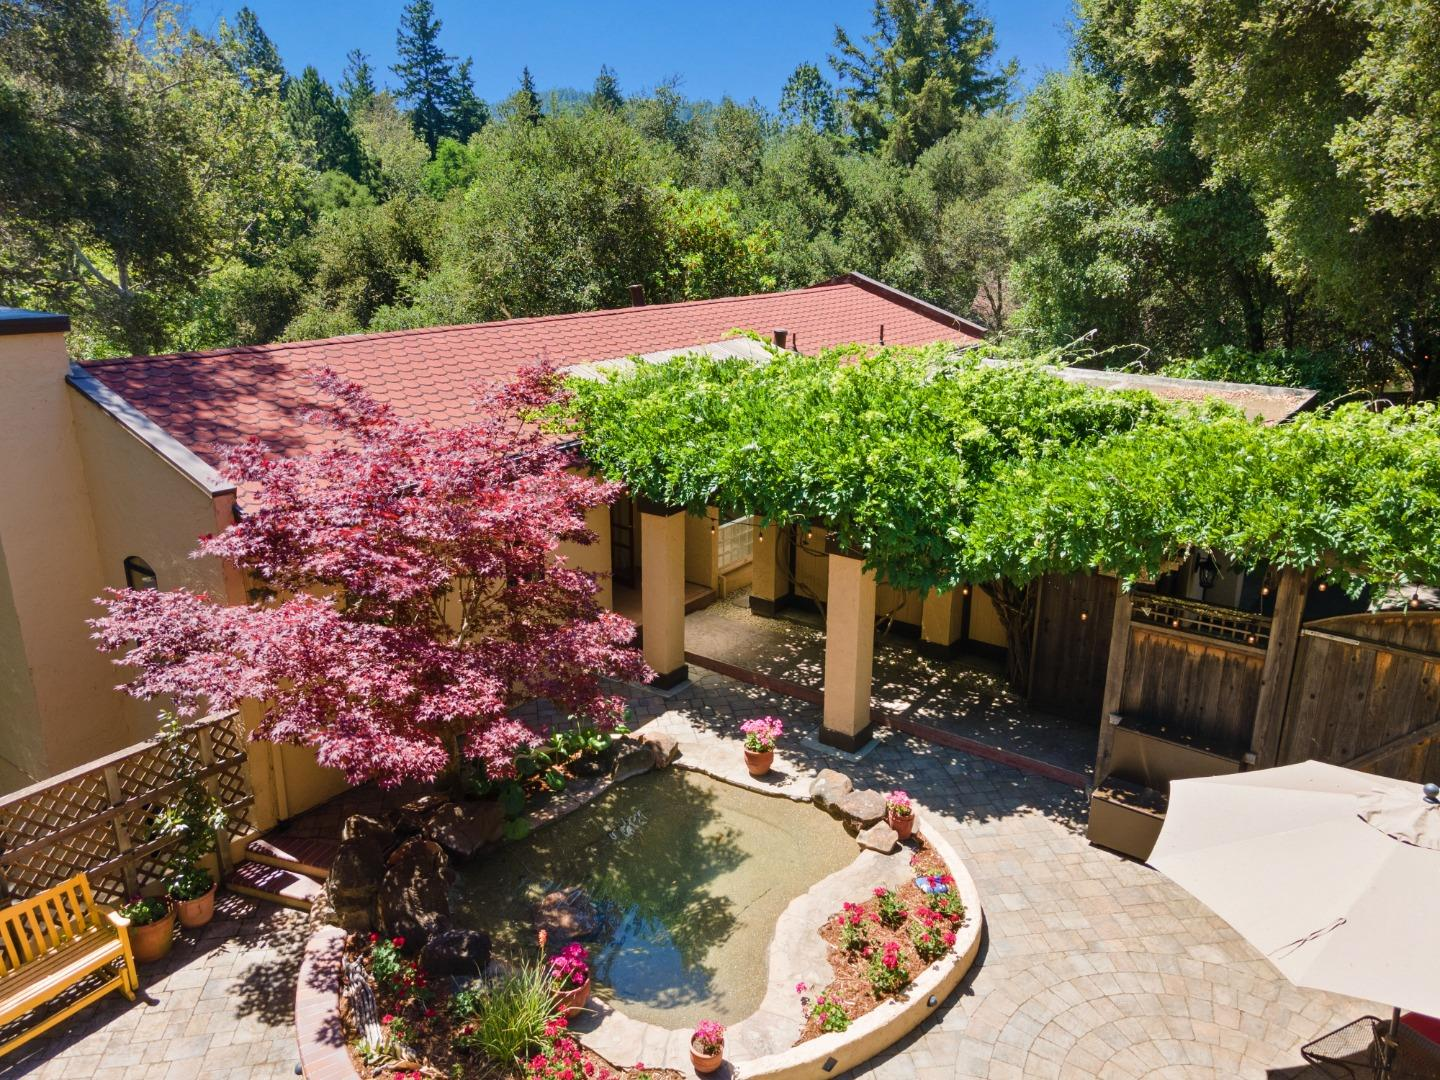 Picturesque, Mediterranean styled home is the perfect modern mountain getaway. Arbored entrance & sparkling pond offer a most spectacular welcome. Arched doorway & formal entry leads to the main living areas, where you are greeted by warm colored walls, tile floors, & whitewashed vaulted ceilings. Numerous skylights & picture windows bring in the natural light. Oversized living room w/ a wood burning fireplace. Kitchen & dining areas are an entertainer's dream featuring gorgeous wood cabinets, stainless steel appliances, ample counter space, and sliders to the deck. All 3 bedrooms are downstairs, the master on one end and the 2 BRs and BA on the other end. Master suite has a walk closet, en-suite bathroom, and sliding doors to a sunny patio & private hot tub. Don't miss the additional detached guest room. Plenty of storage space, including pantry, mudroom, and exterior storage shed. Parcel also offers private creek access, a great mix of sun and shade, and parking for up to 10 cars.